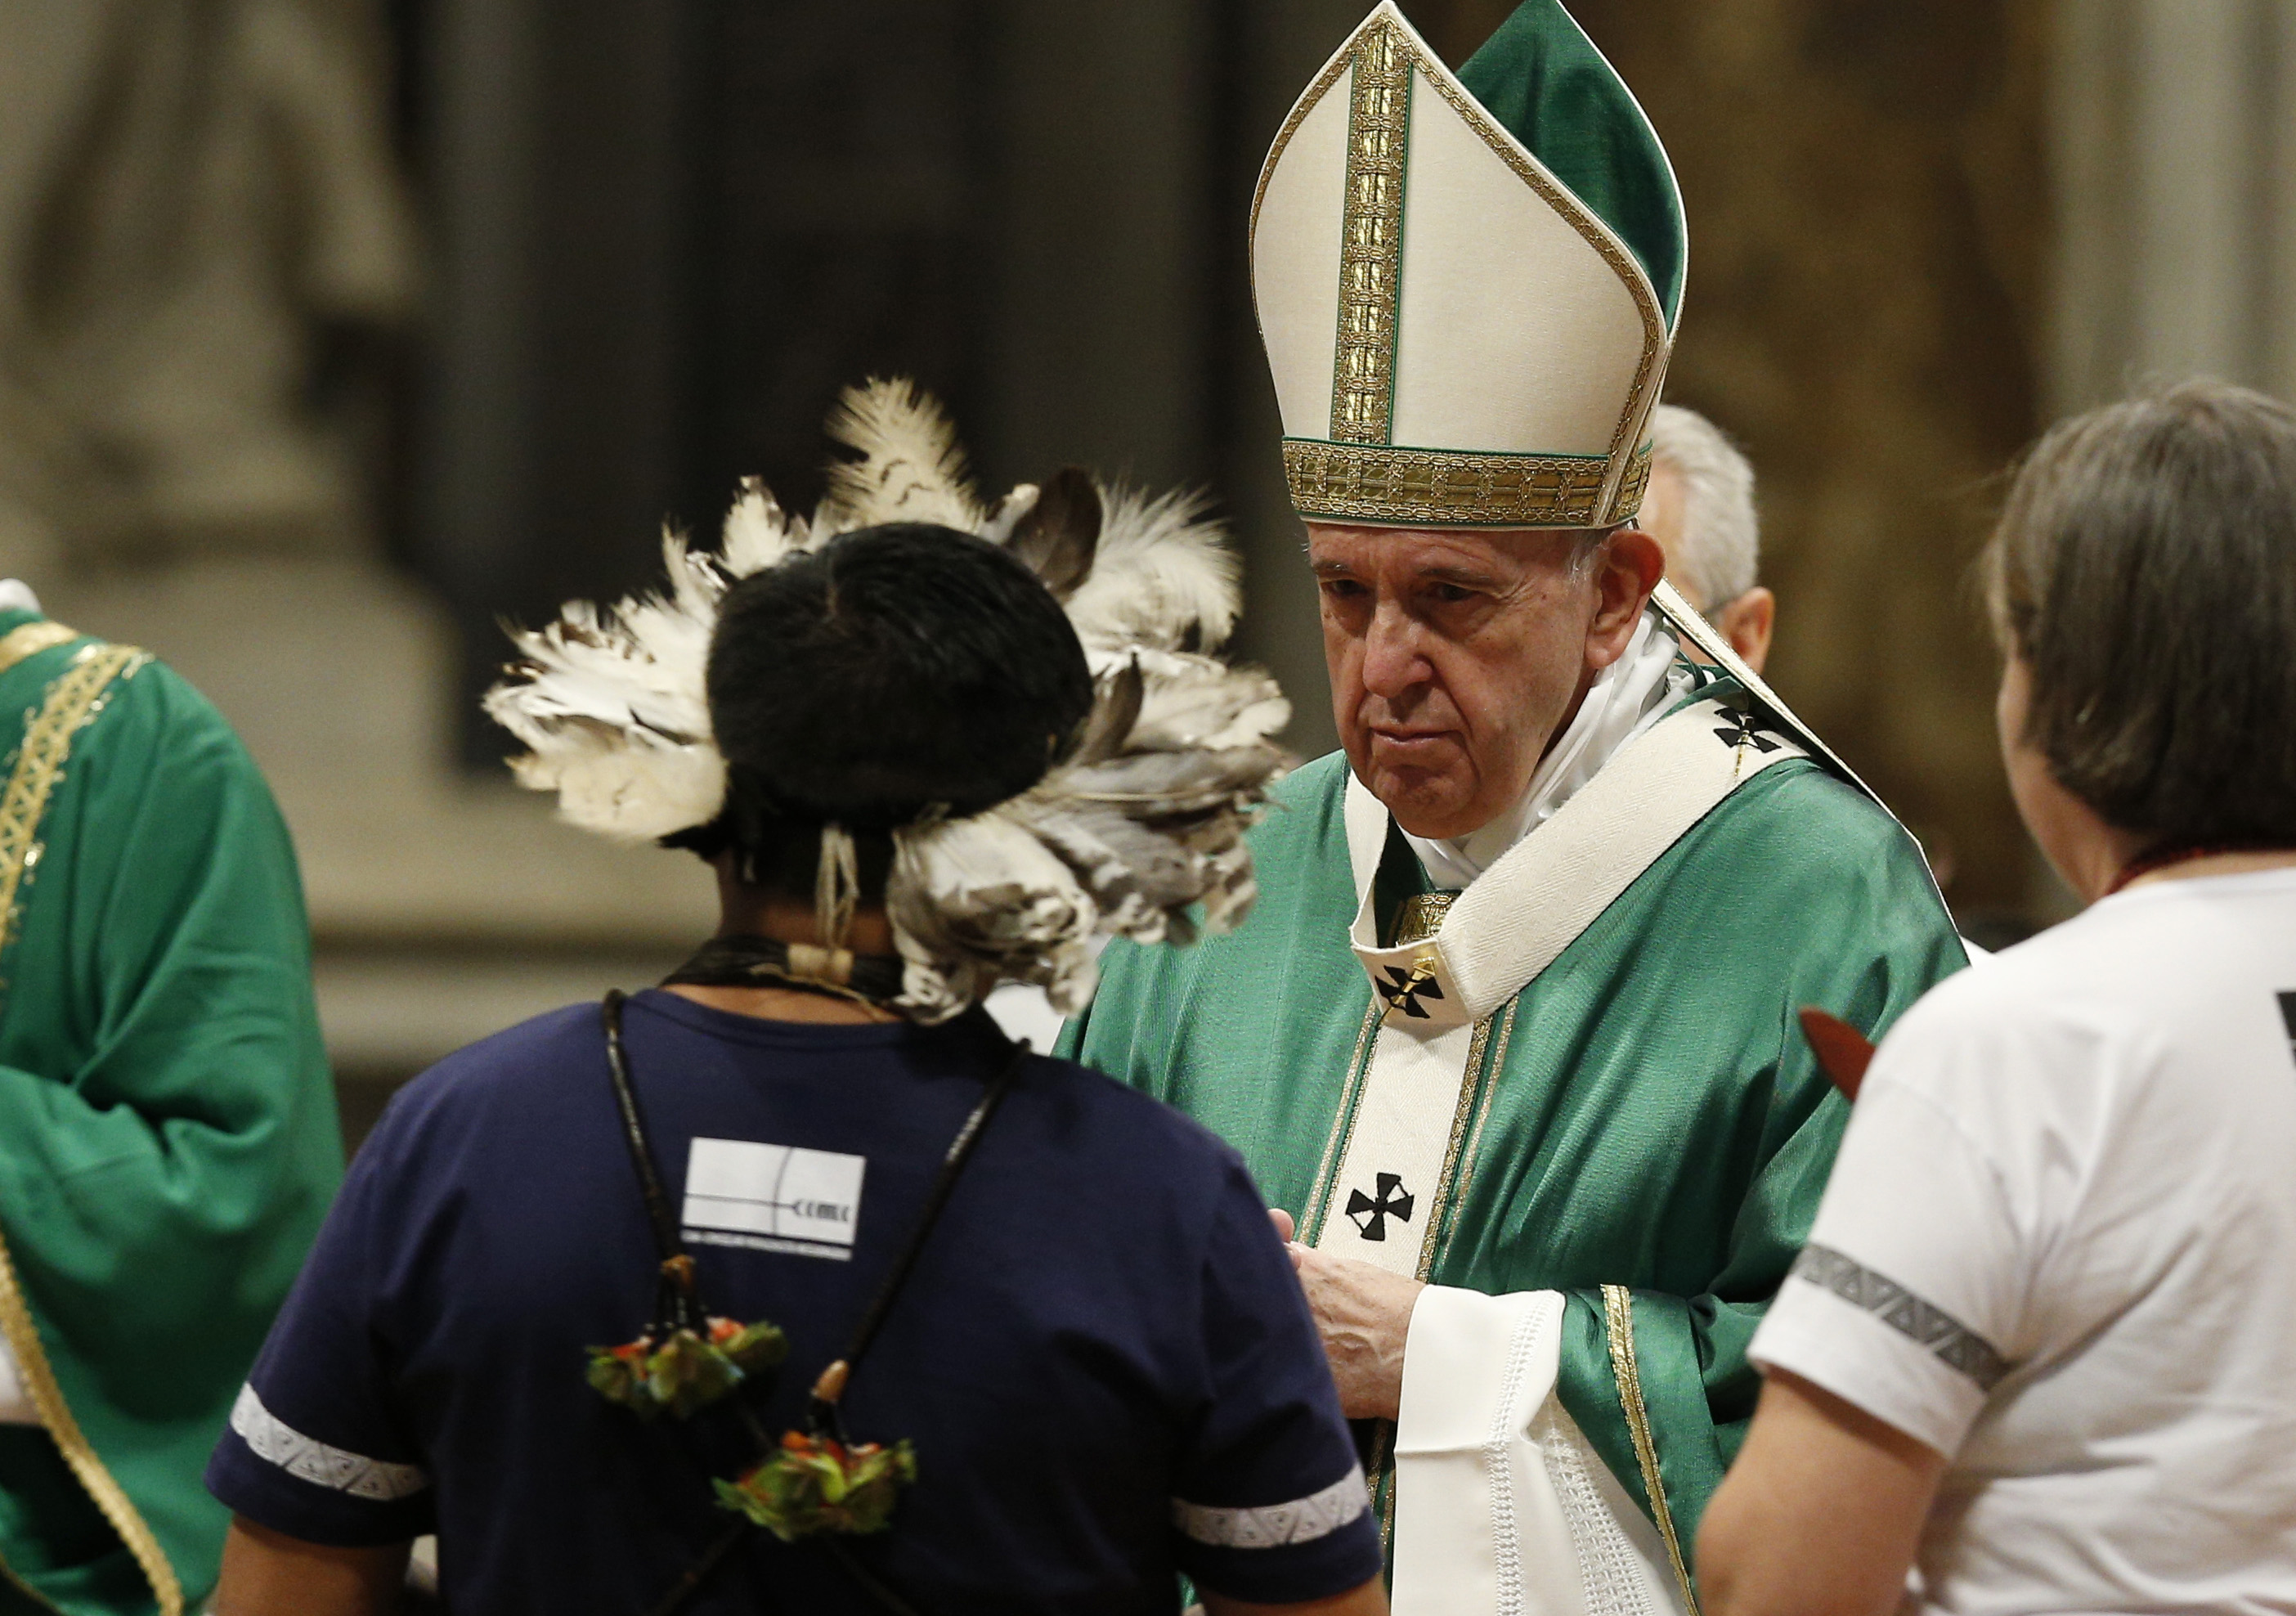 Fear, attachment to status quo smother fire of God's love, pope says